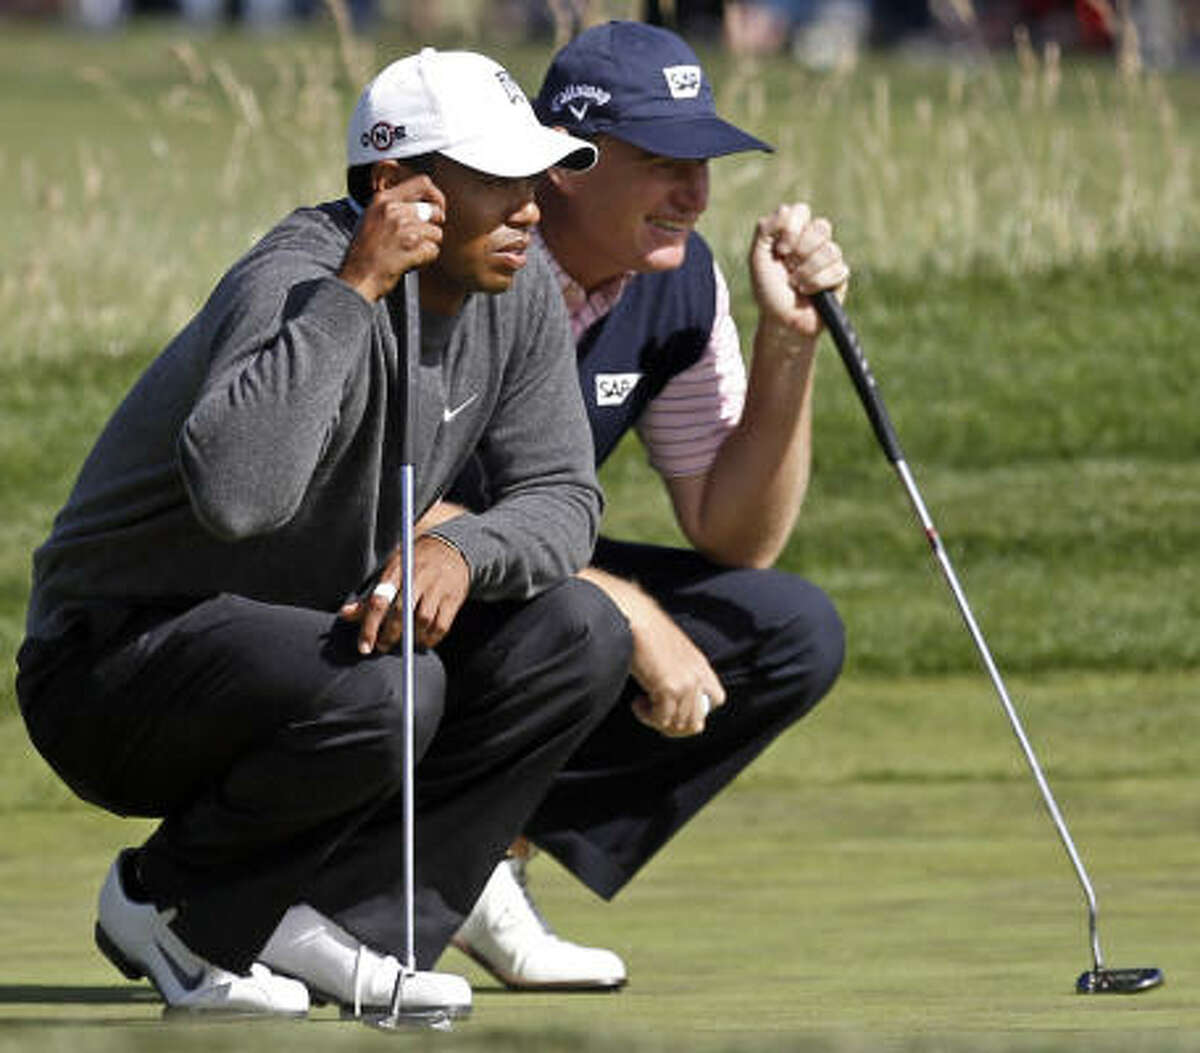 Tiger Woods, left, and Ernie Els of South Africa line up putts on the 12th hole during the first round.